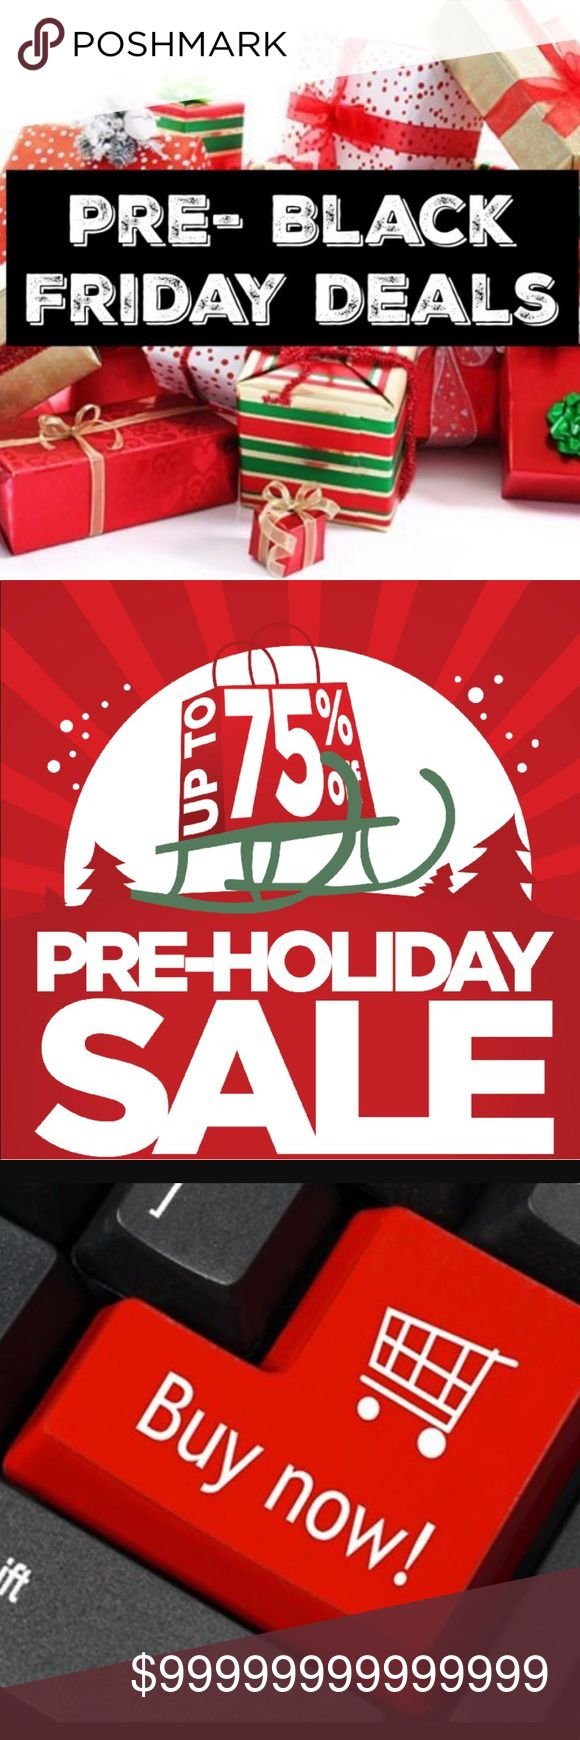 🎄🎁 3 DAY SALE - PRE BLACK FRIDAY SALES NOW 🎁🎄 Get Your Holiday Shopping Started Now And Enjoy Savings Up To 75% Off!!!!! I'm Currently Accepting All Reasonable Offers Through The Offer Button!!! And Don't Forget To Bundle And Save Even More!!! Sweaters